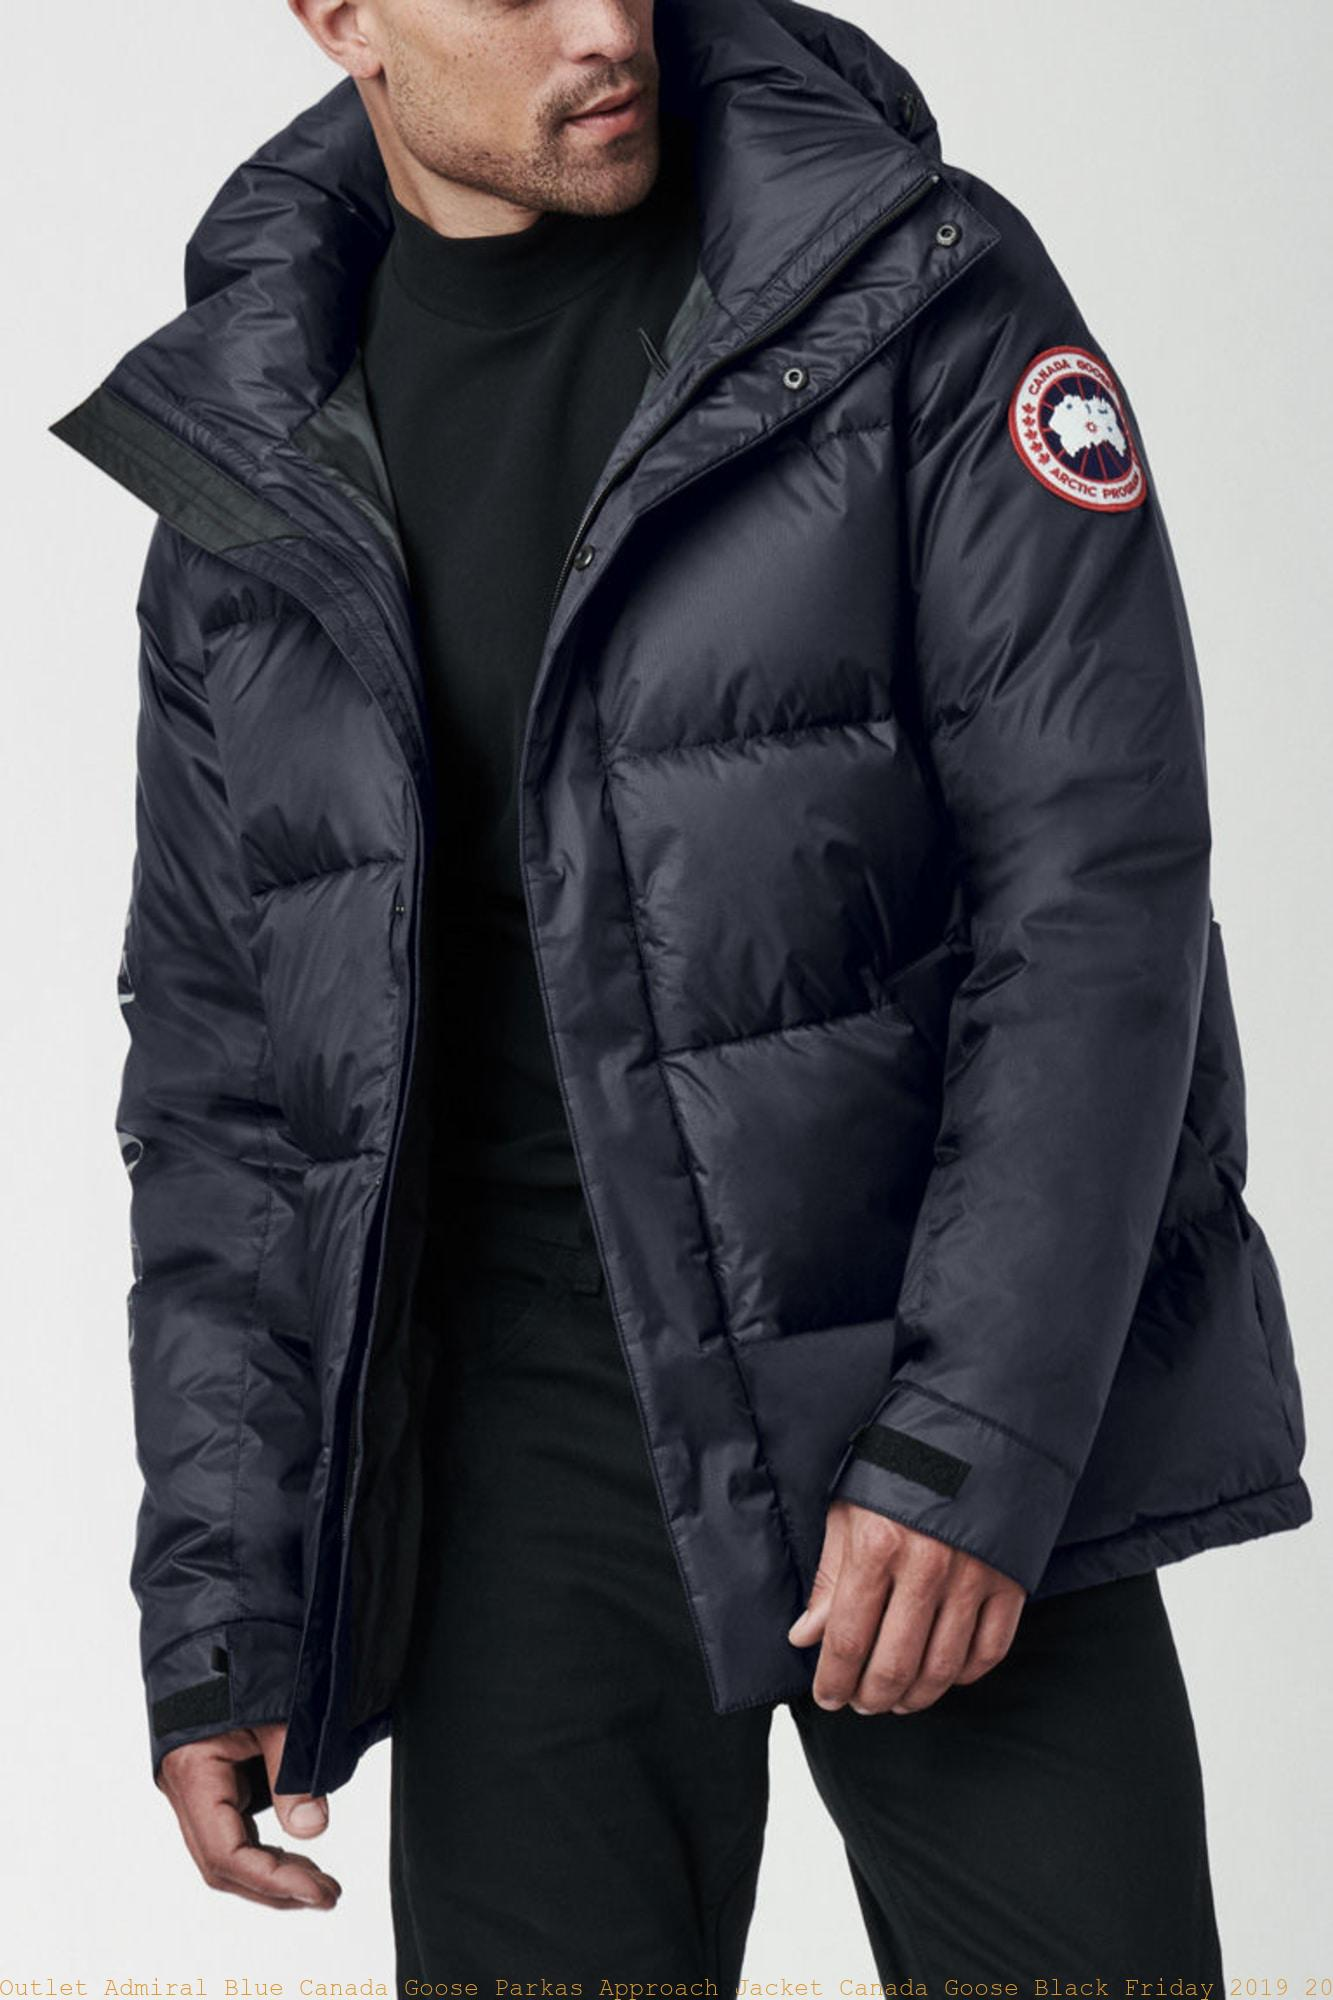 Outlet Admiral Blue Canada Goose Parkas Approach Jacket ...